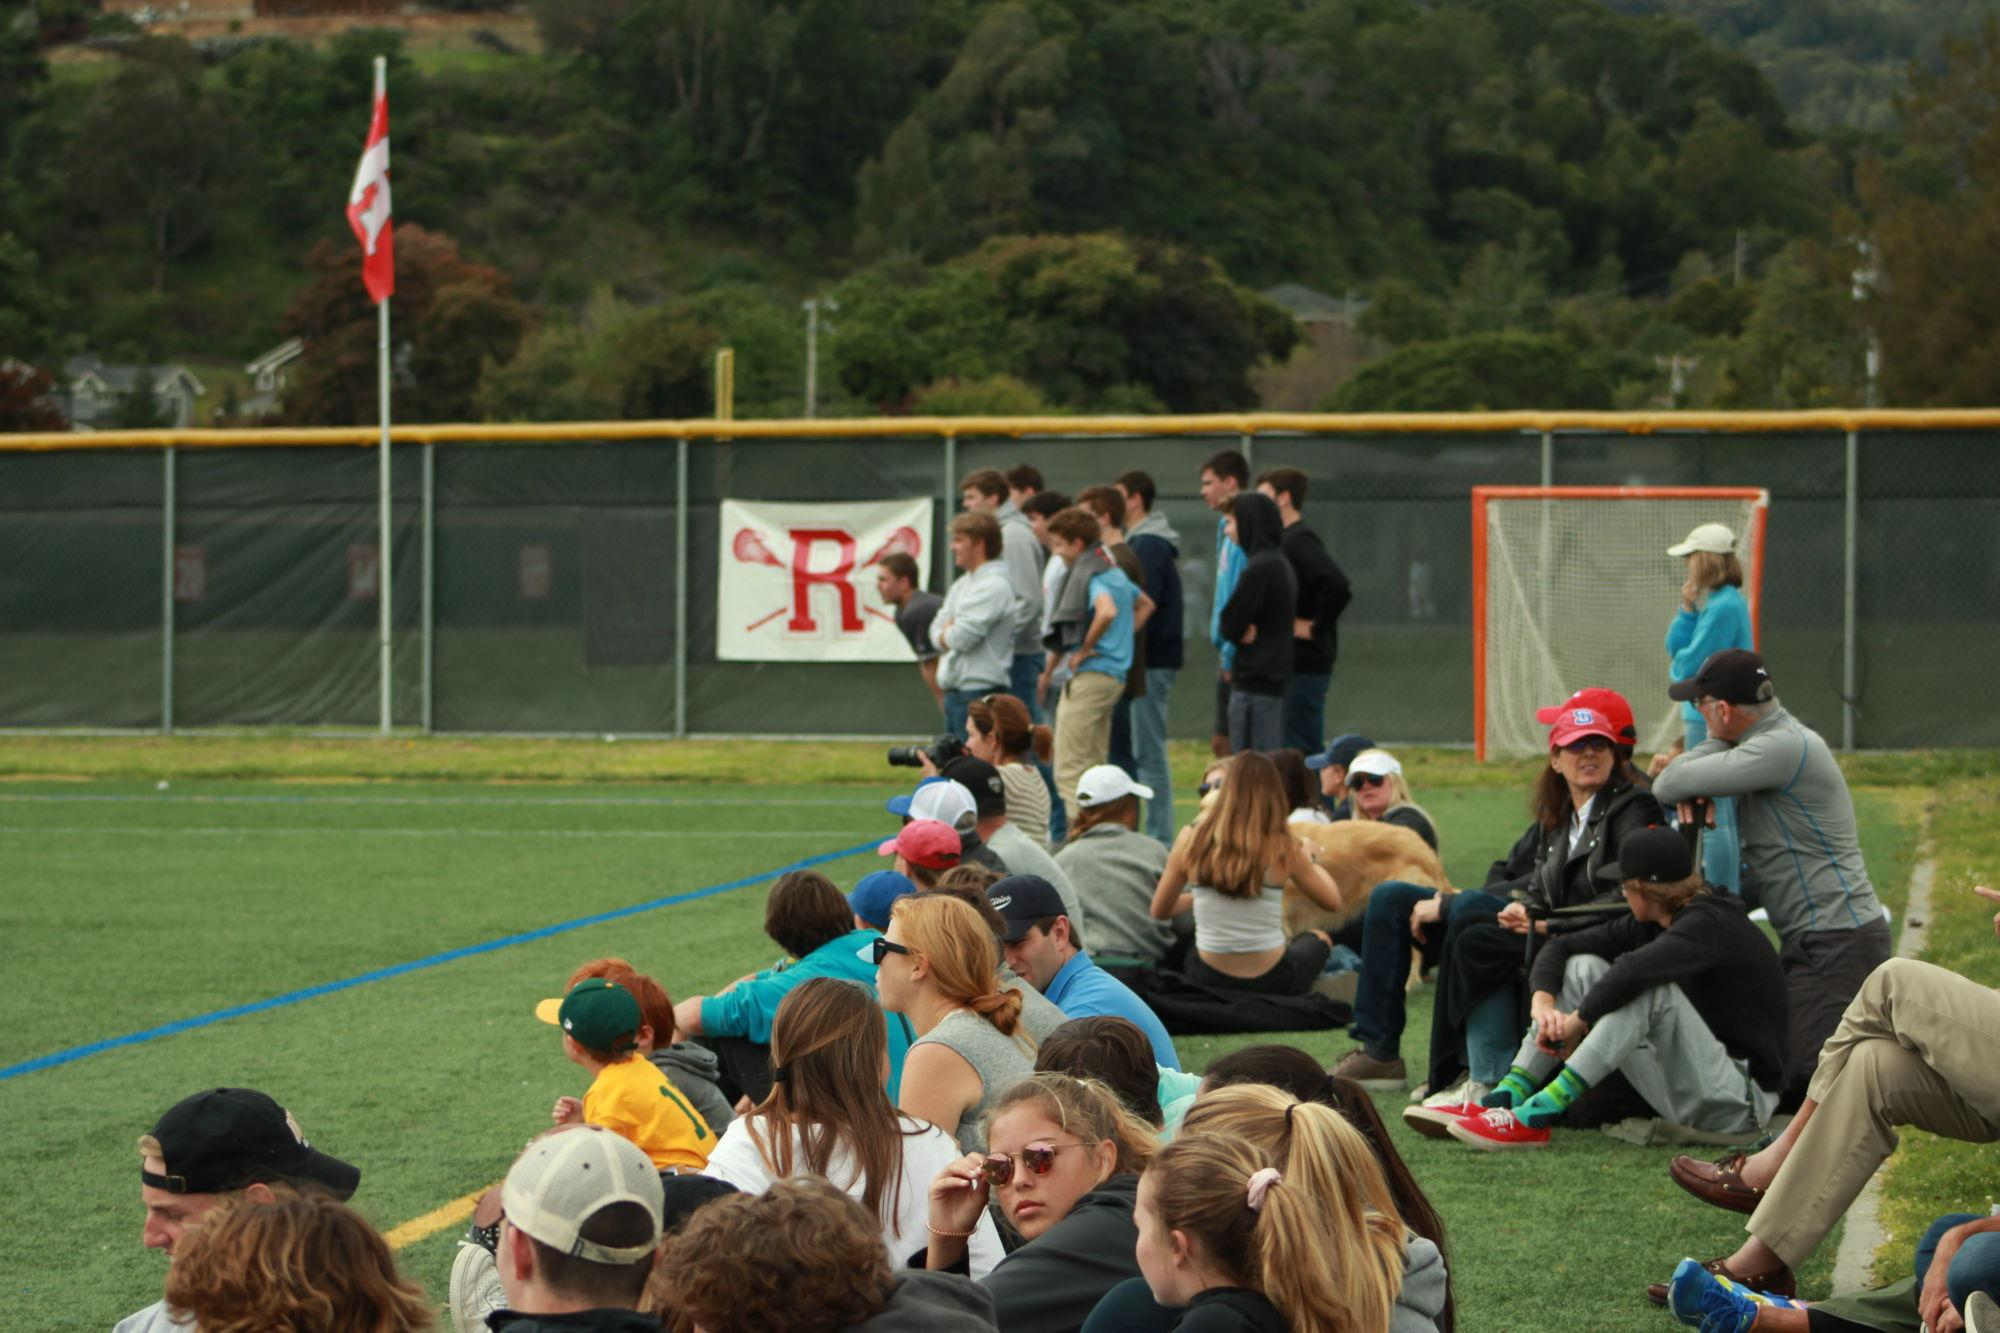 The+crowd+of+students+at+the+highly+attended+game+watches+from+the+sideline.